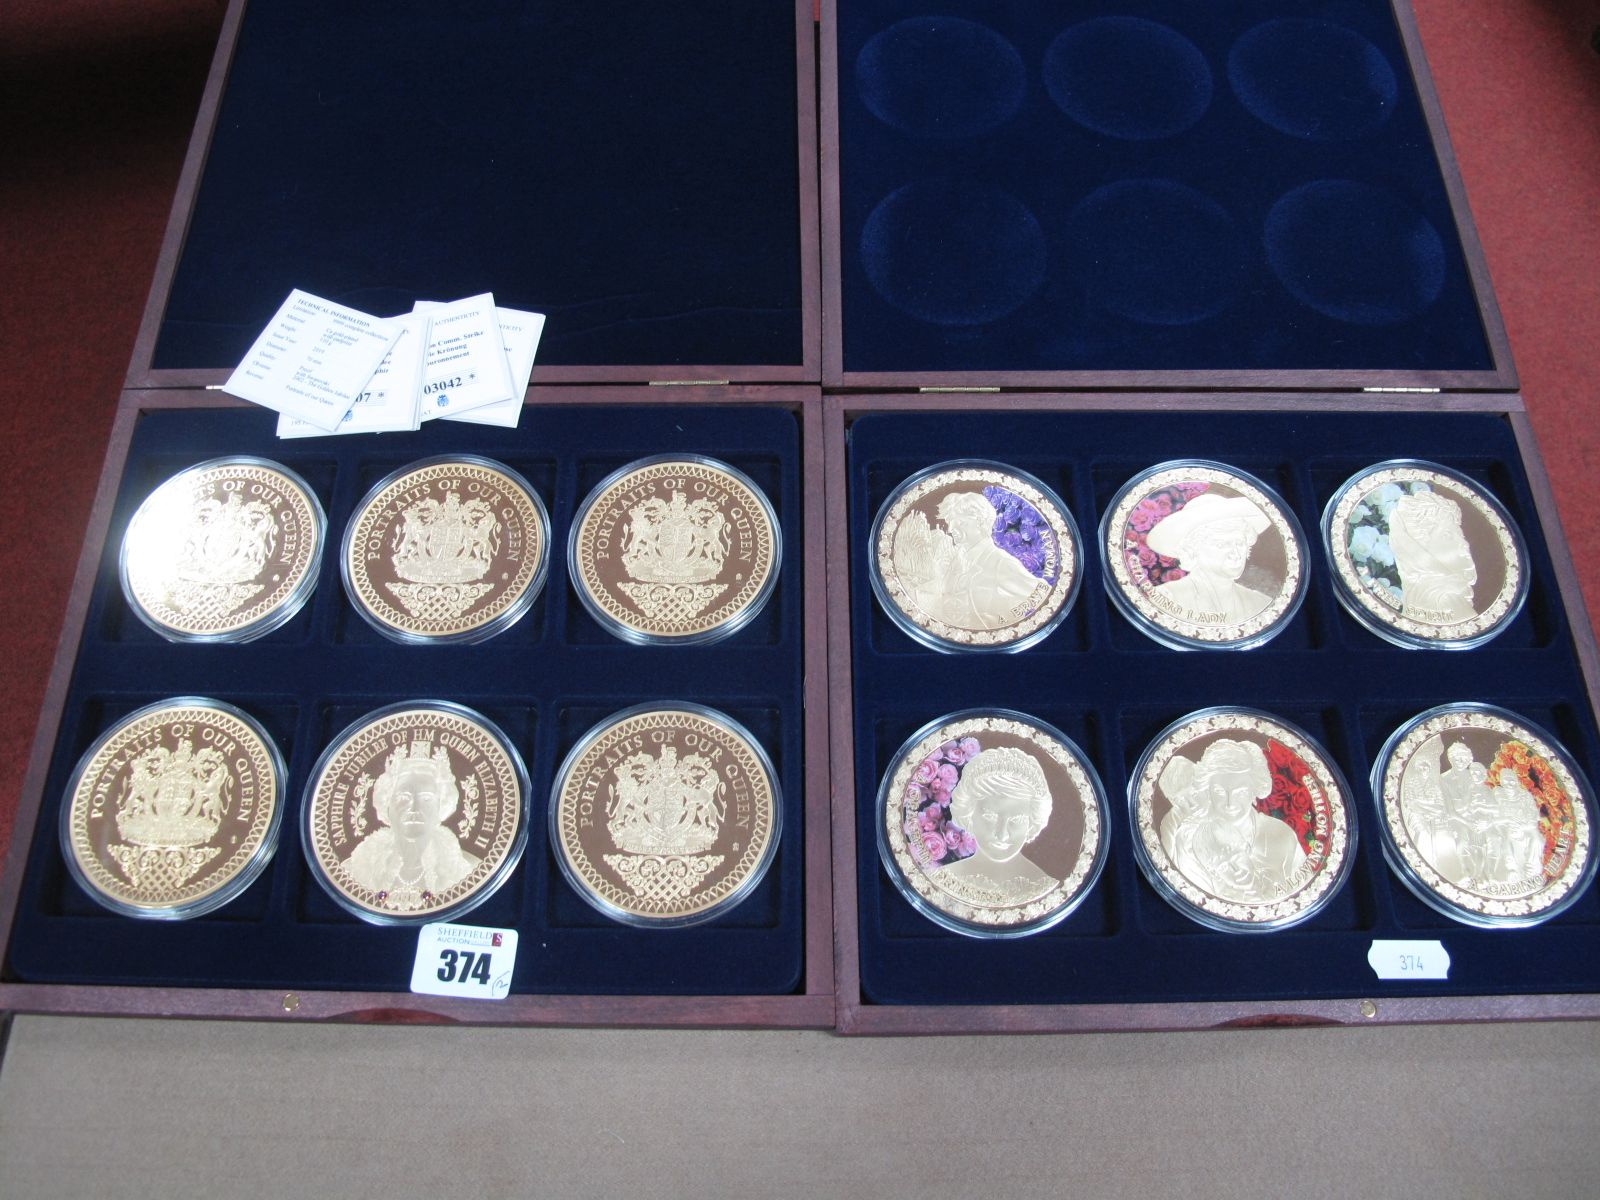 2019 Portraits of our Queen Gold Plated Six Coin Set, together with a Diana Spencer Colours of an